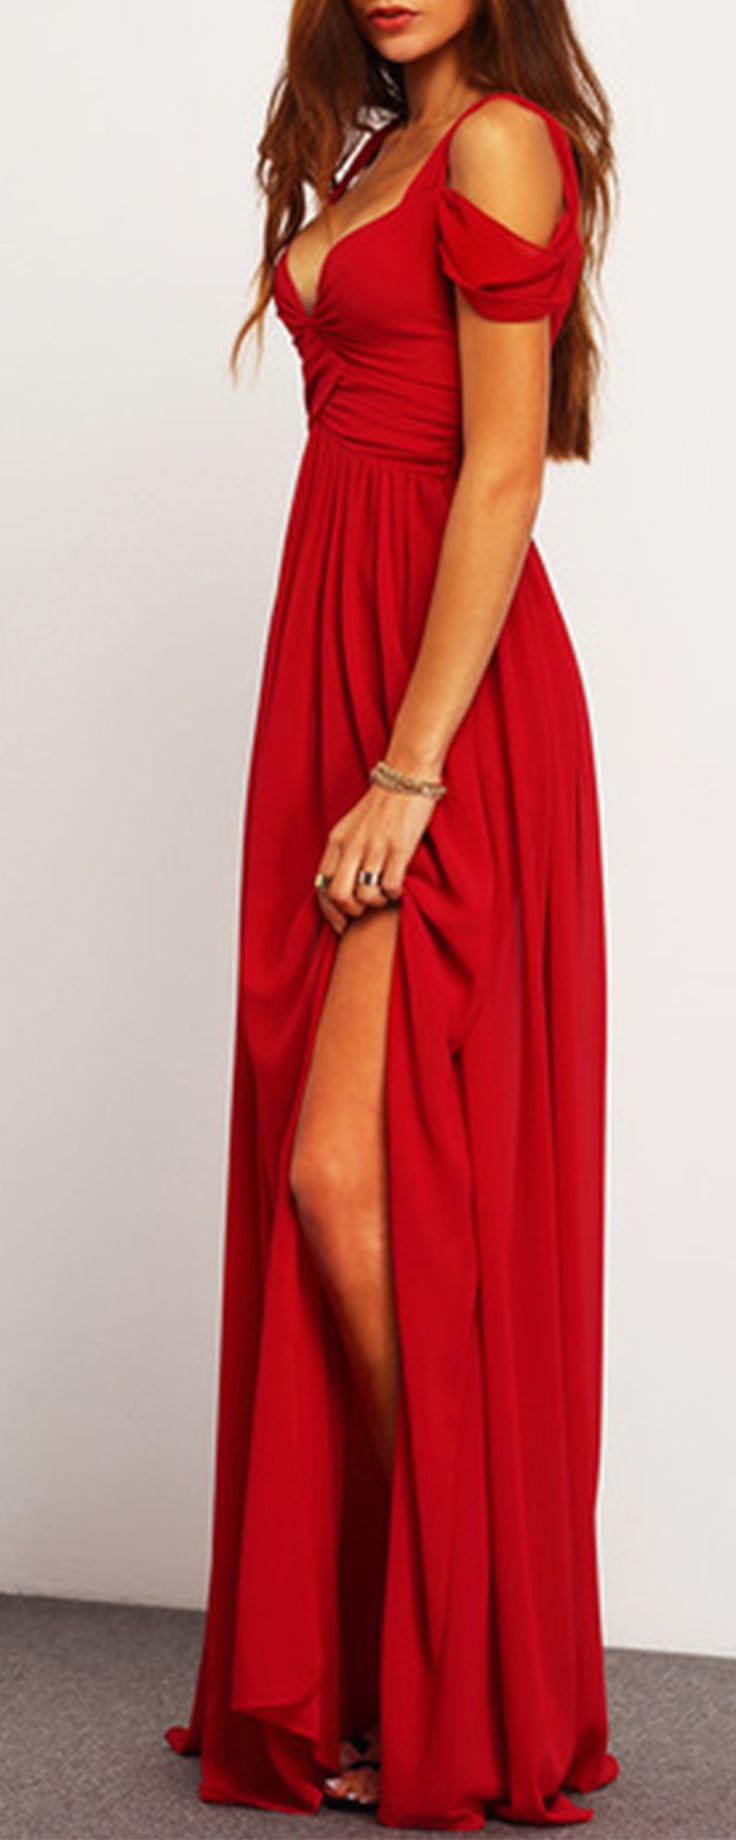 Best 20+ Dress red ideas on Pinterest